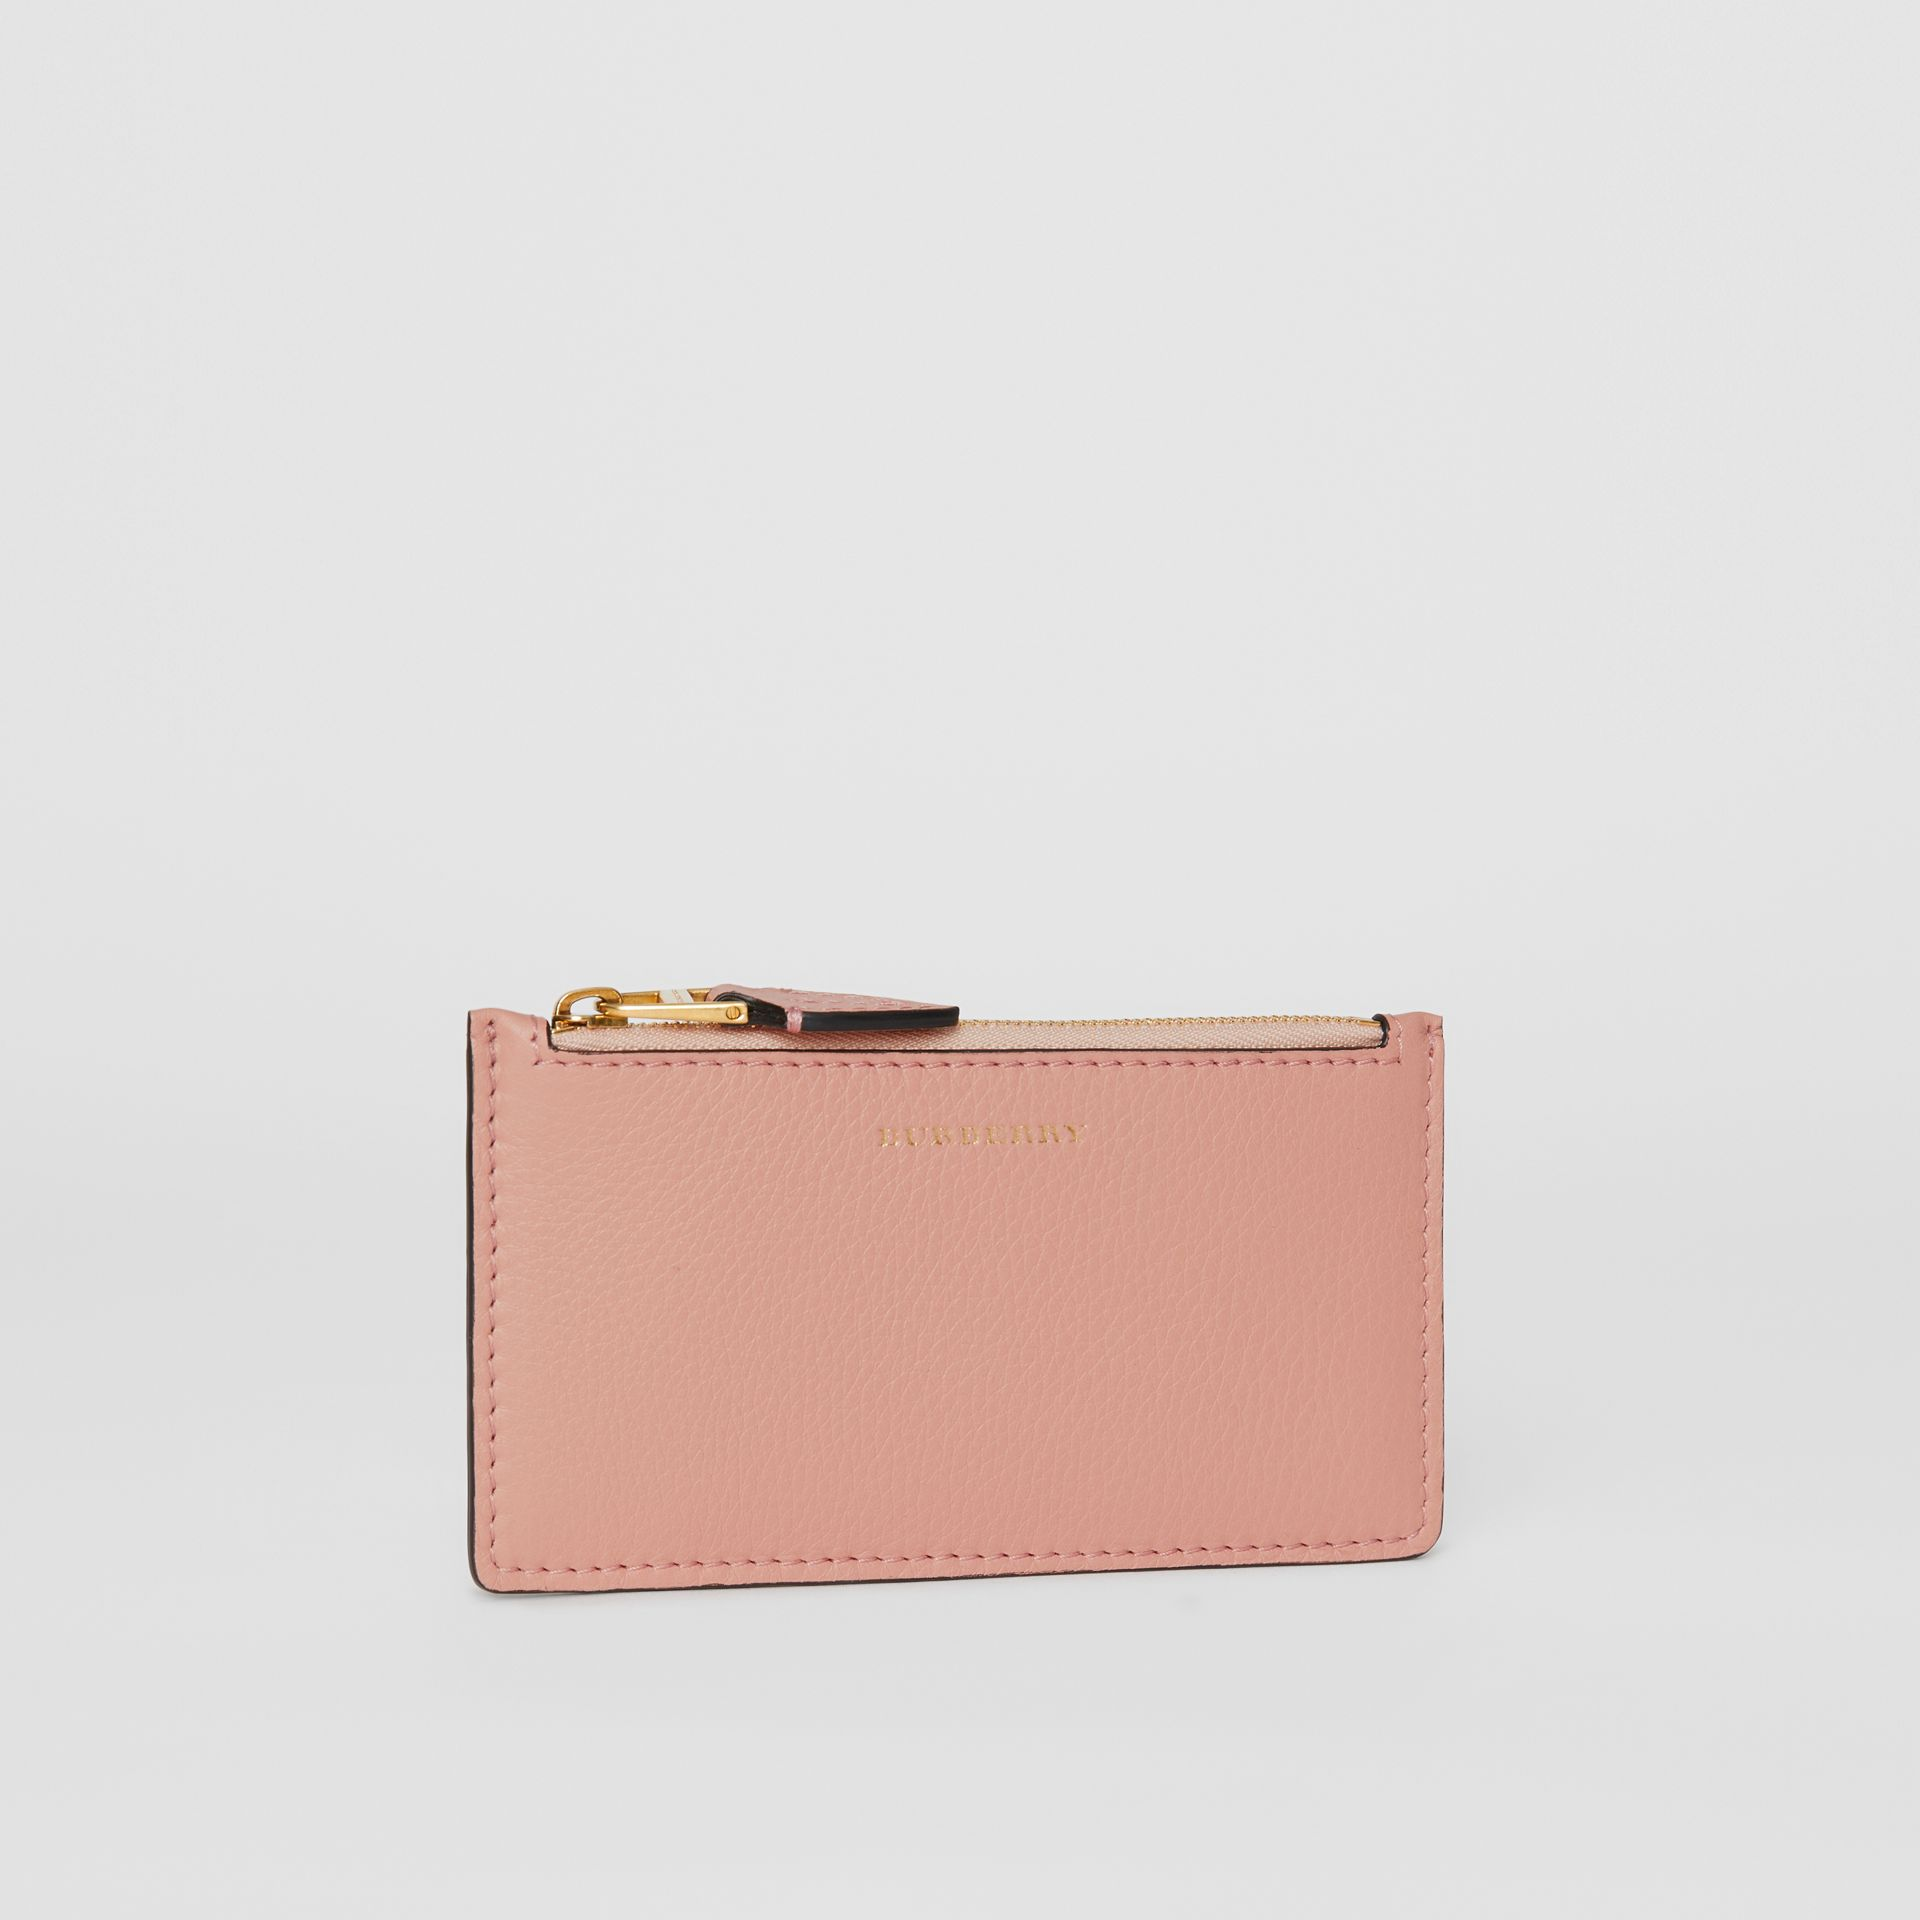 Two-tone Leather Zip Card Case in Ash Rose - Women | Burberry Australia - gallery image 3